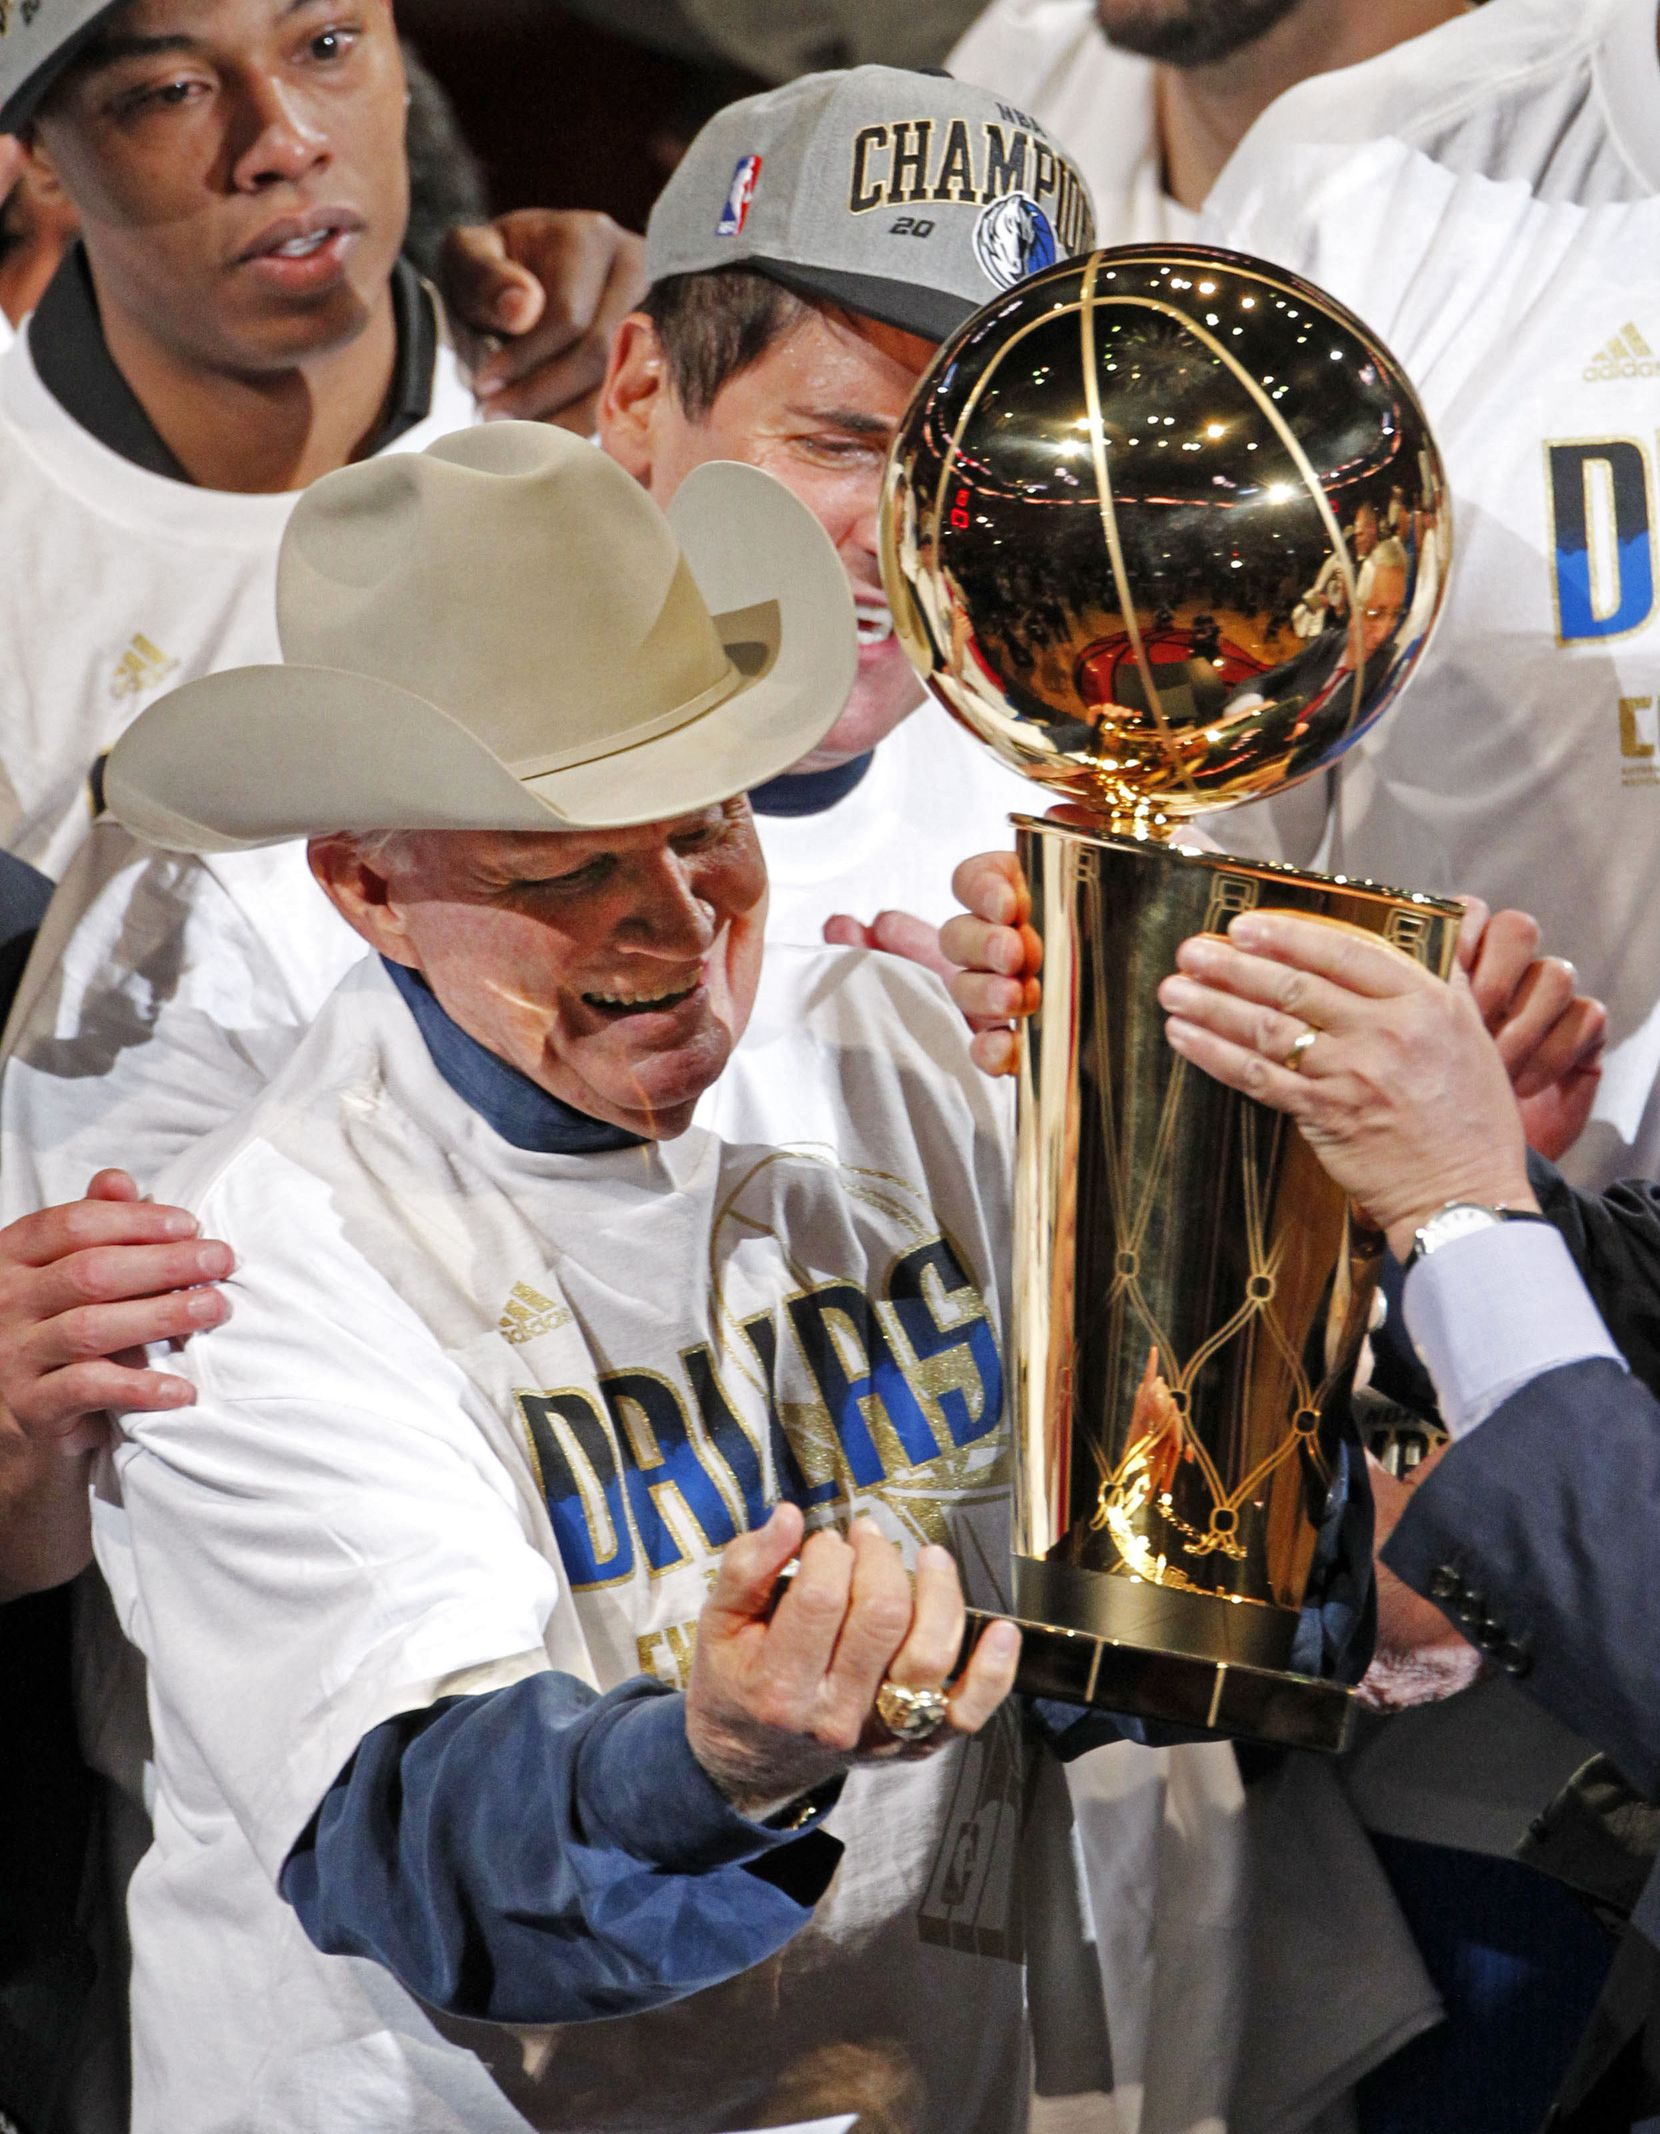 Dallas Mavericks original owner Don Carter (in cowboy hat) is handed the Larry O'Brien NBA Championship trophy from NBA Commissioner David Stern as Dallas Mavericks owner Mark Cuban watches during the trophy presentation after game six of the NBA Finals between the Miami Heat and the Dallas Mavericks at the American Airlines Arena in Miami, Florida, June 12, 2011. Dallas Mavericks won 105-95.